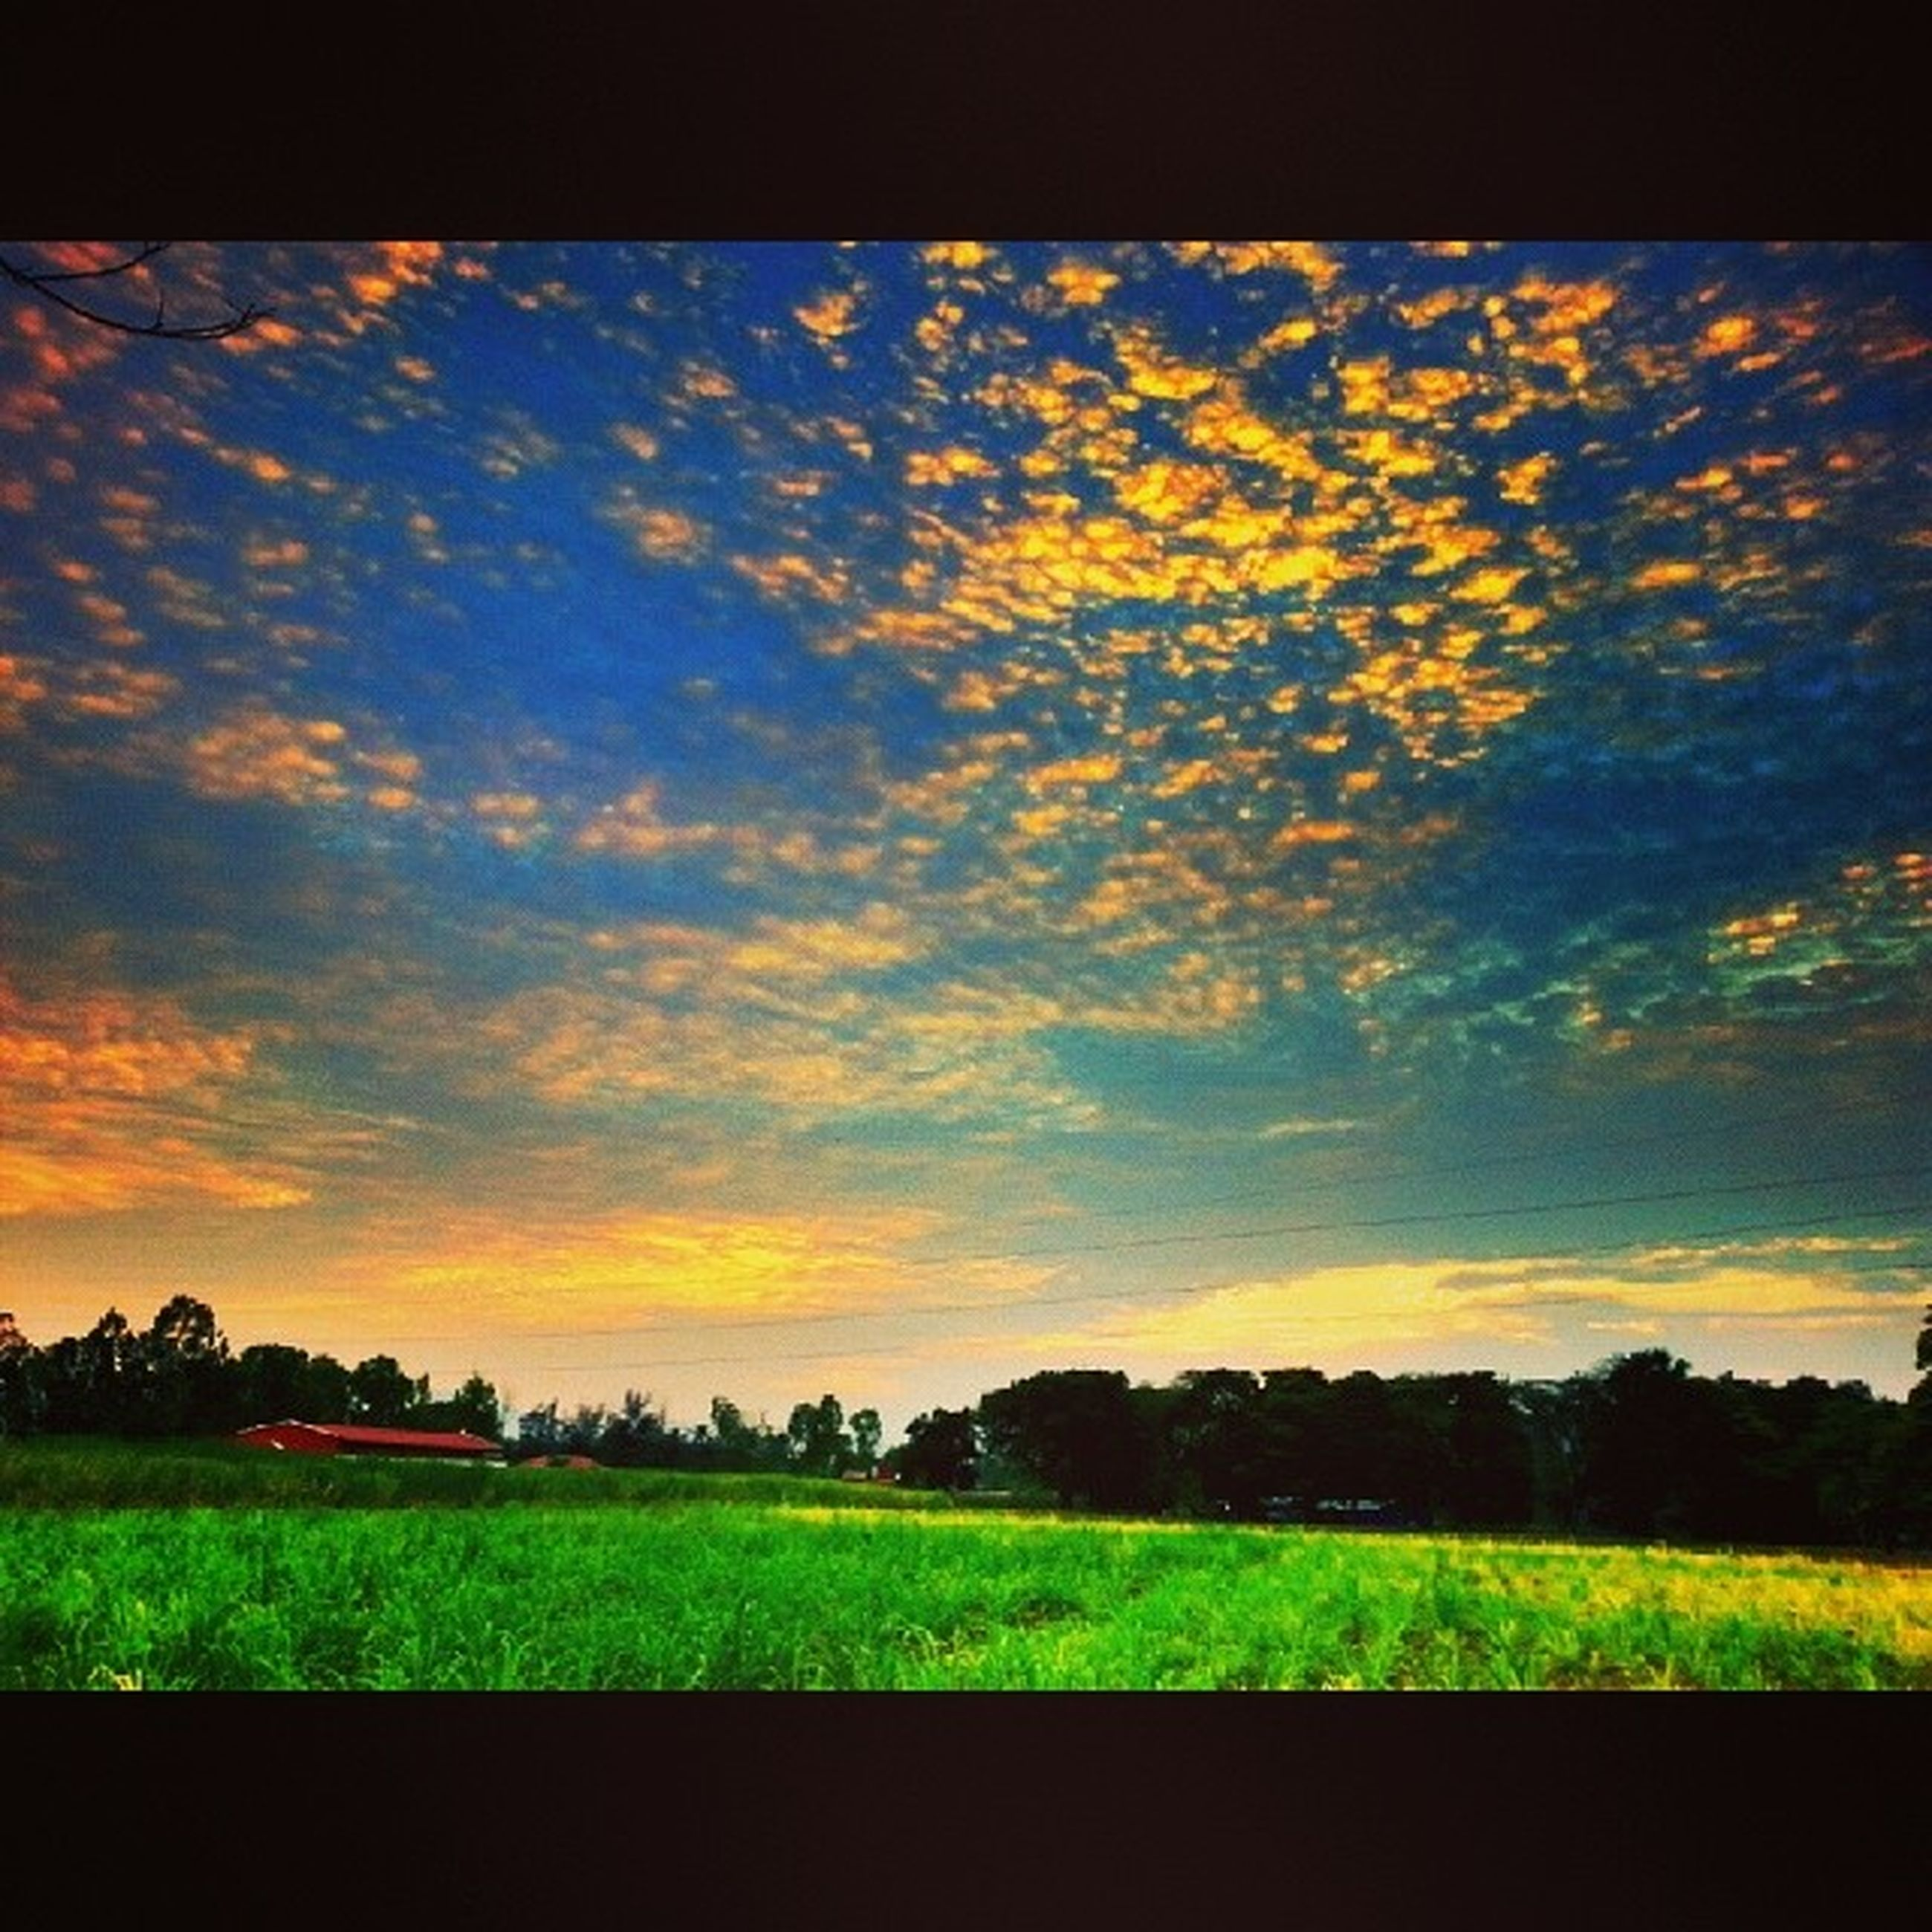 sky, field, grass, sunset, landscape, cloud - sky, tranquil scene, tranquility, beauty in nature, scenics, tree, nature, rural scene, cloud, grassy, growth, building exterior, cloudy, built structure, green color